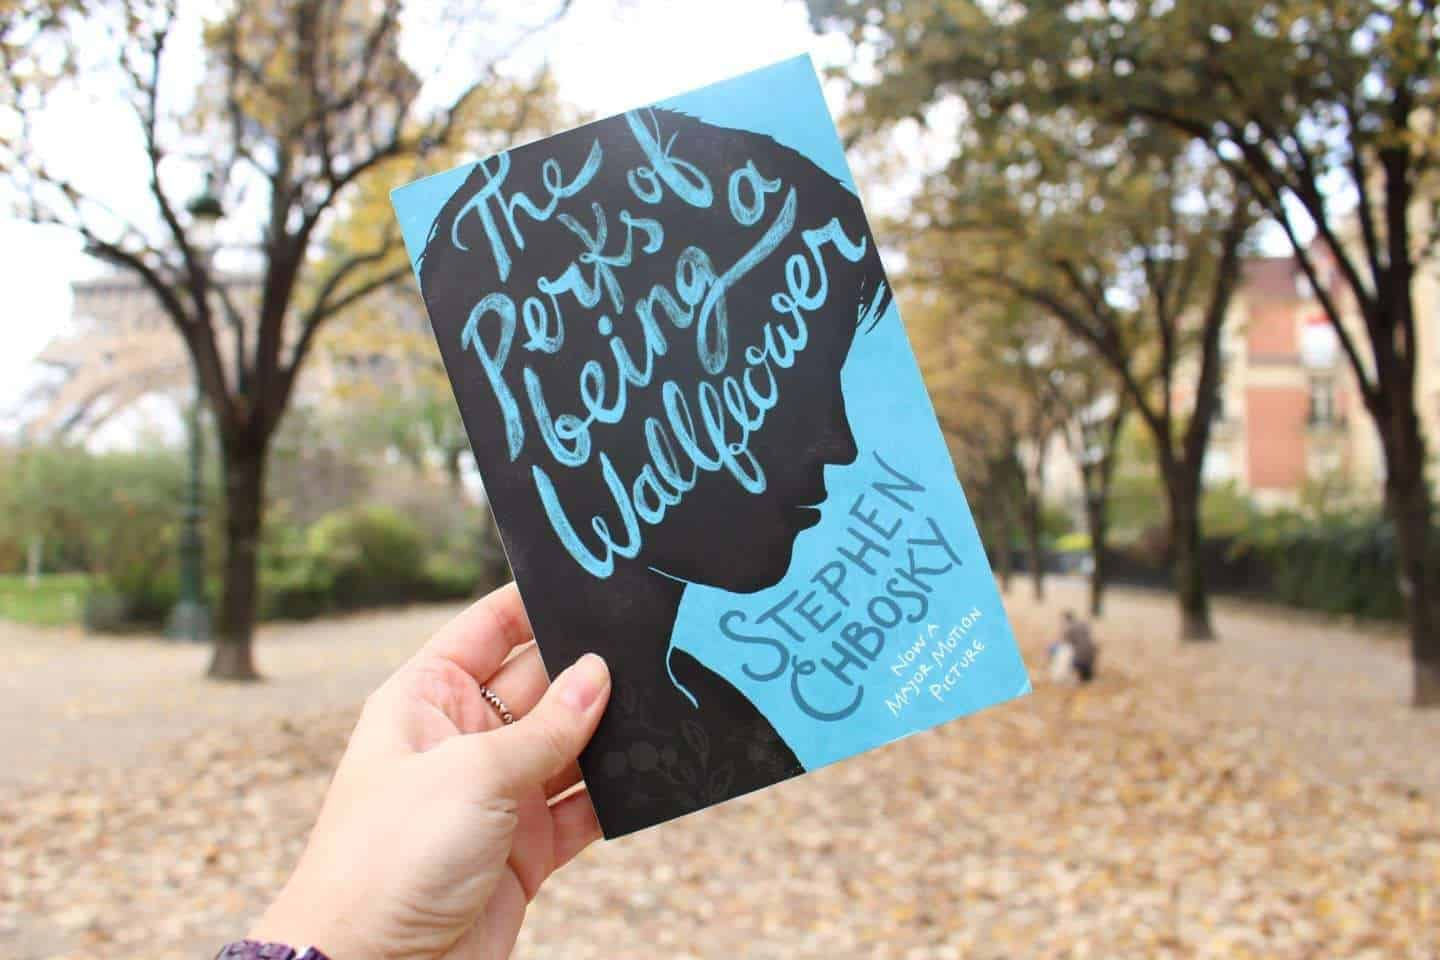 A True Modern Classic: The Perks Of Being A Wallflower